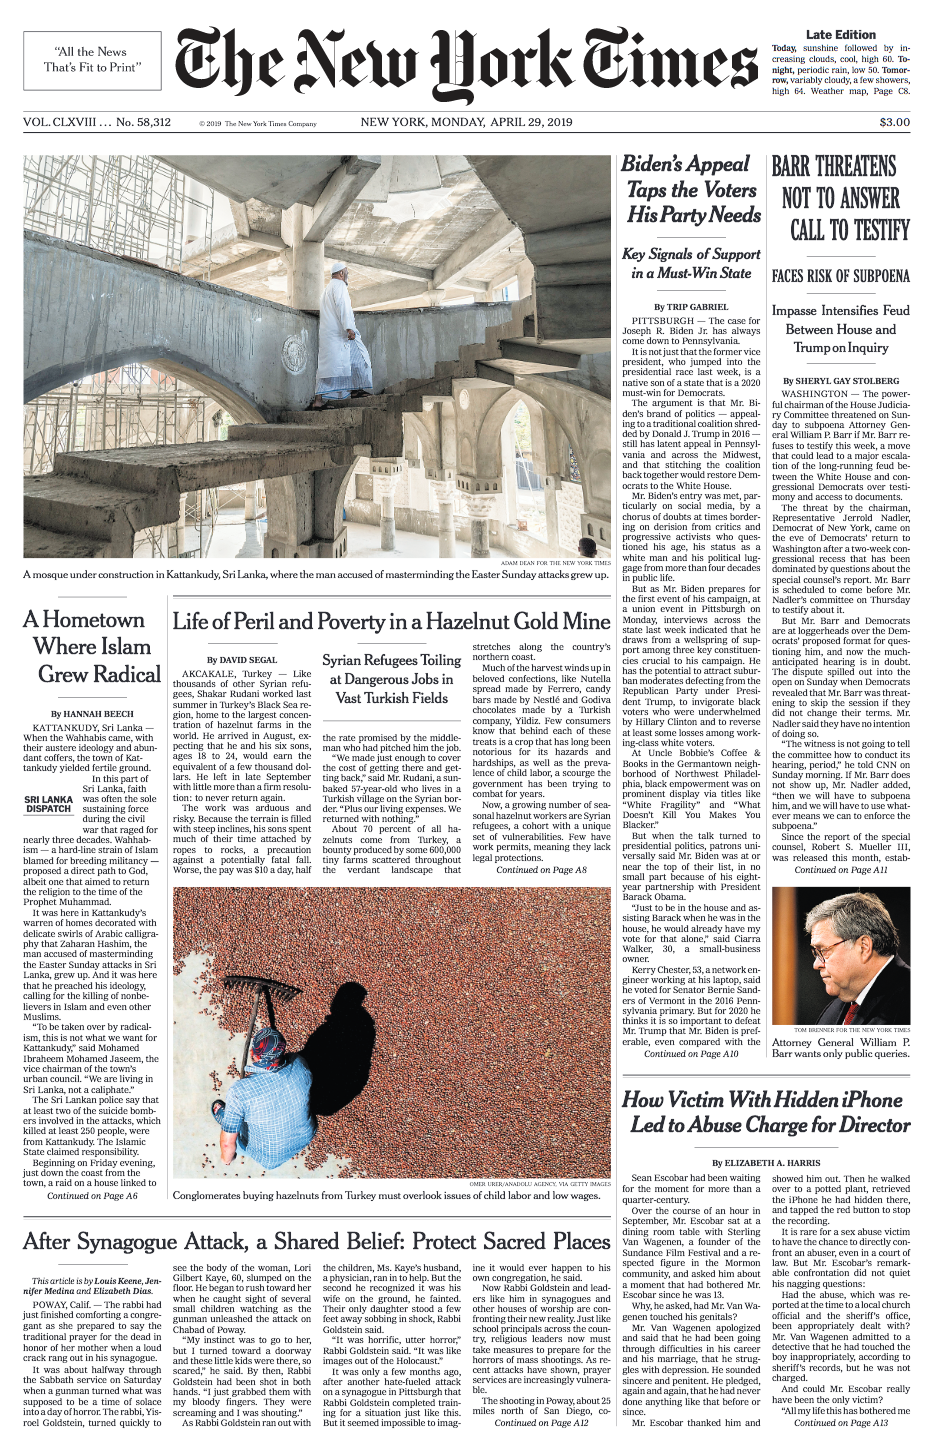 NYT_FrontPage_042919.png